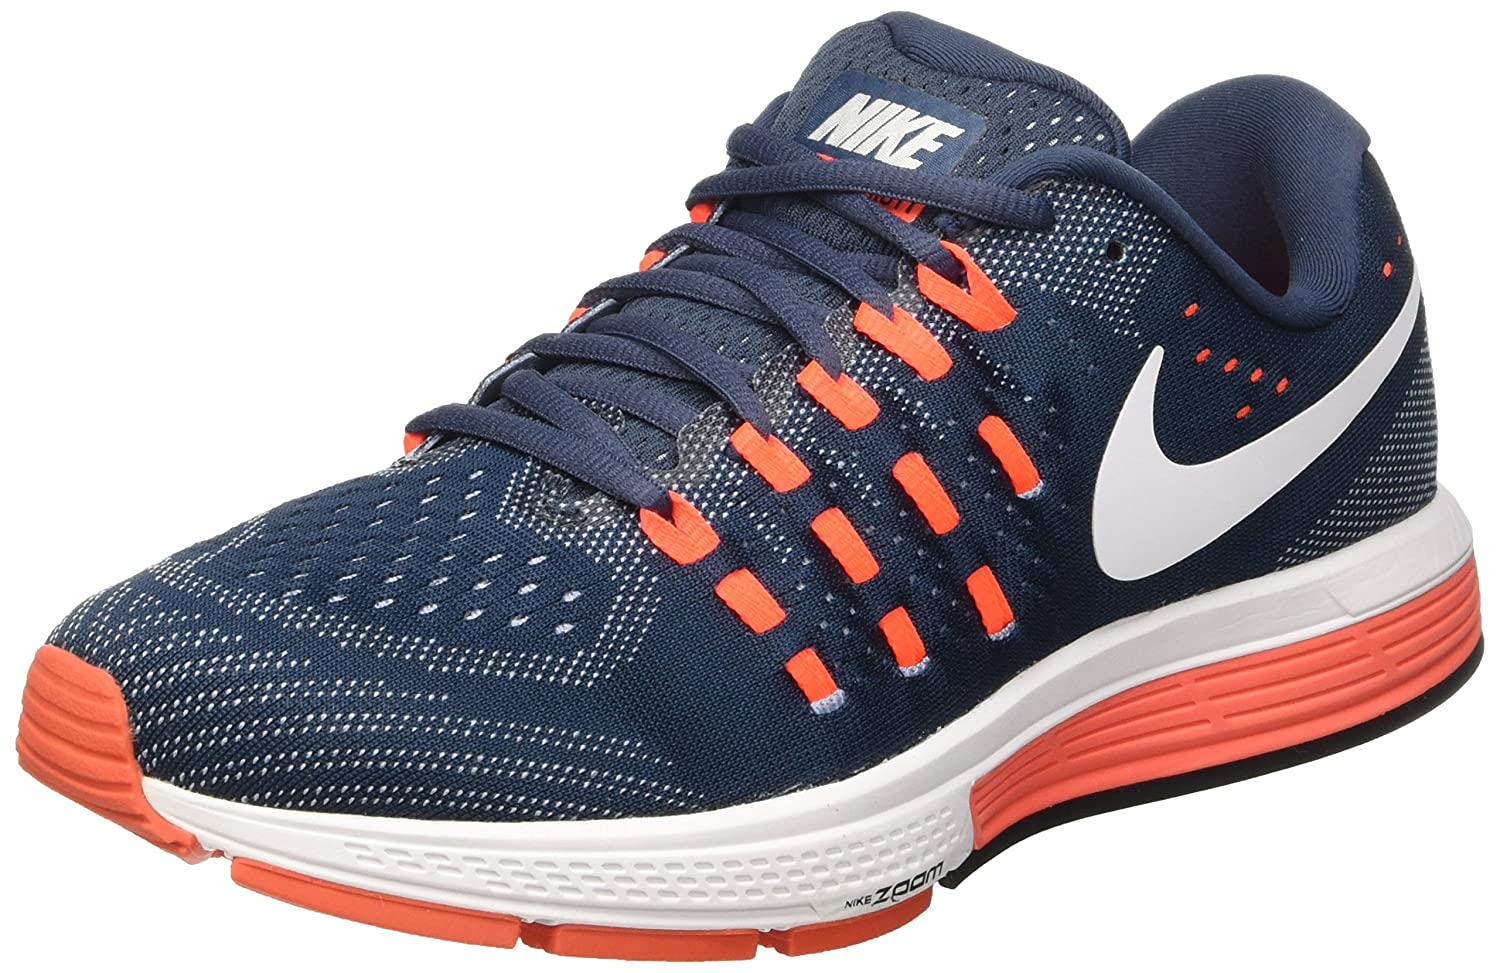 the best attitude d9f58 a3f8c Amazon.com Nike Mens Air Zoom Vomero 11 Running Shoes Shoes